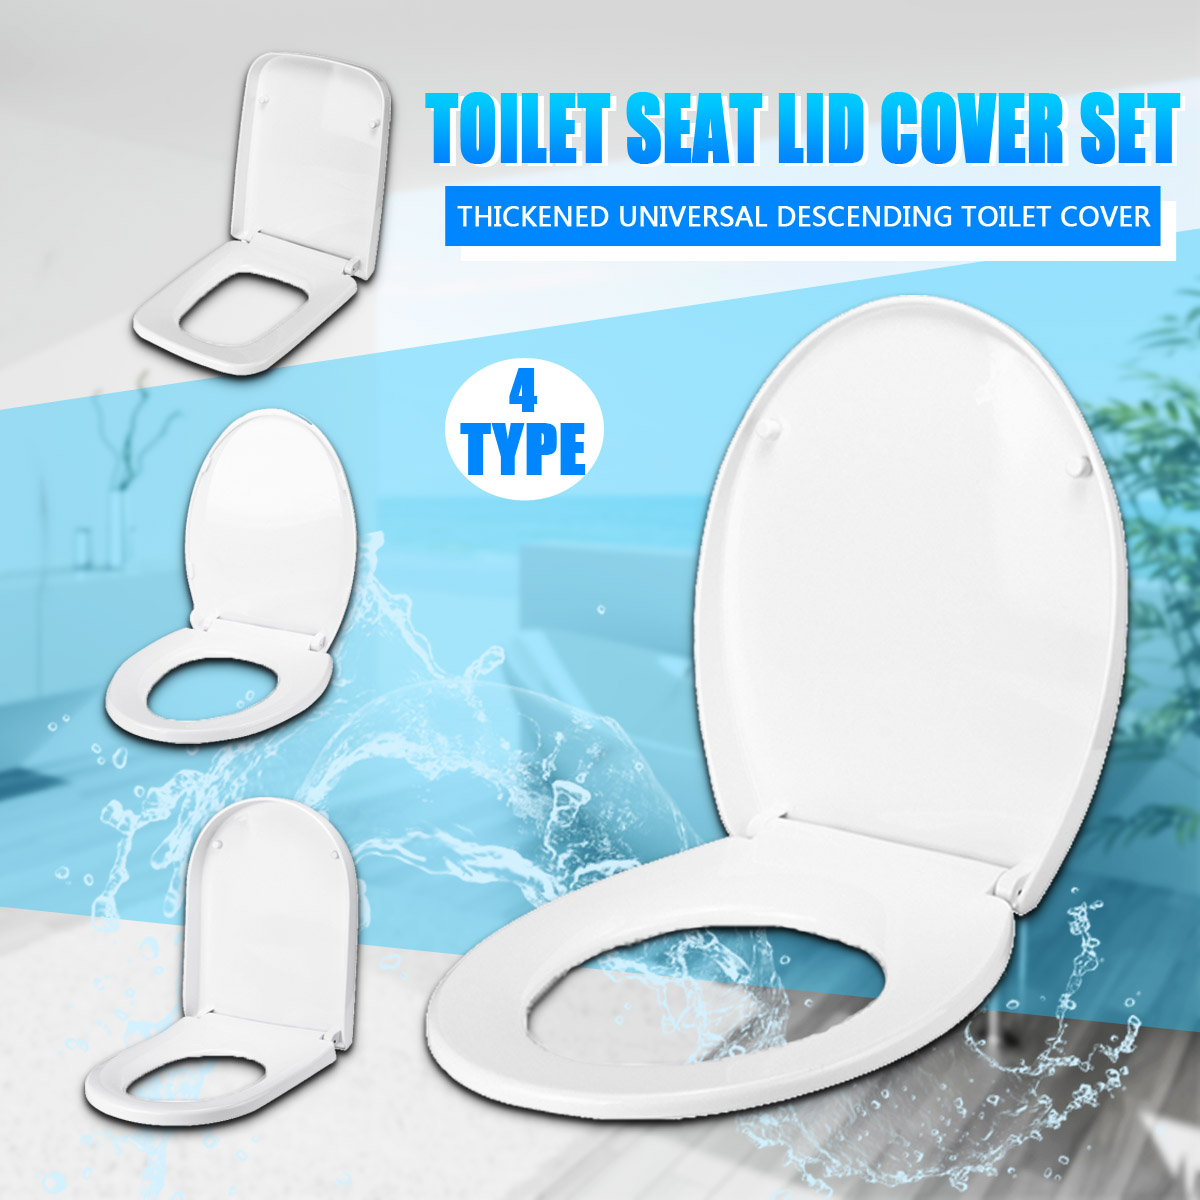 Awe Inspiring Top 8 Most Popular Set Replacement Toilet Seat Brands And Onthecornerstone Fun Painted Chair Ideas Images Onthecornerstoneorg